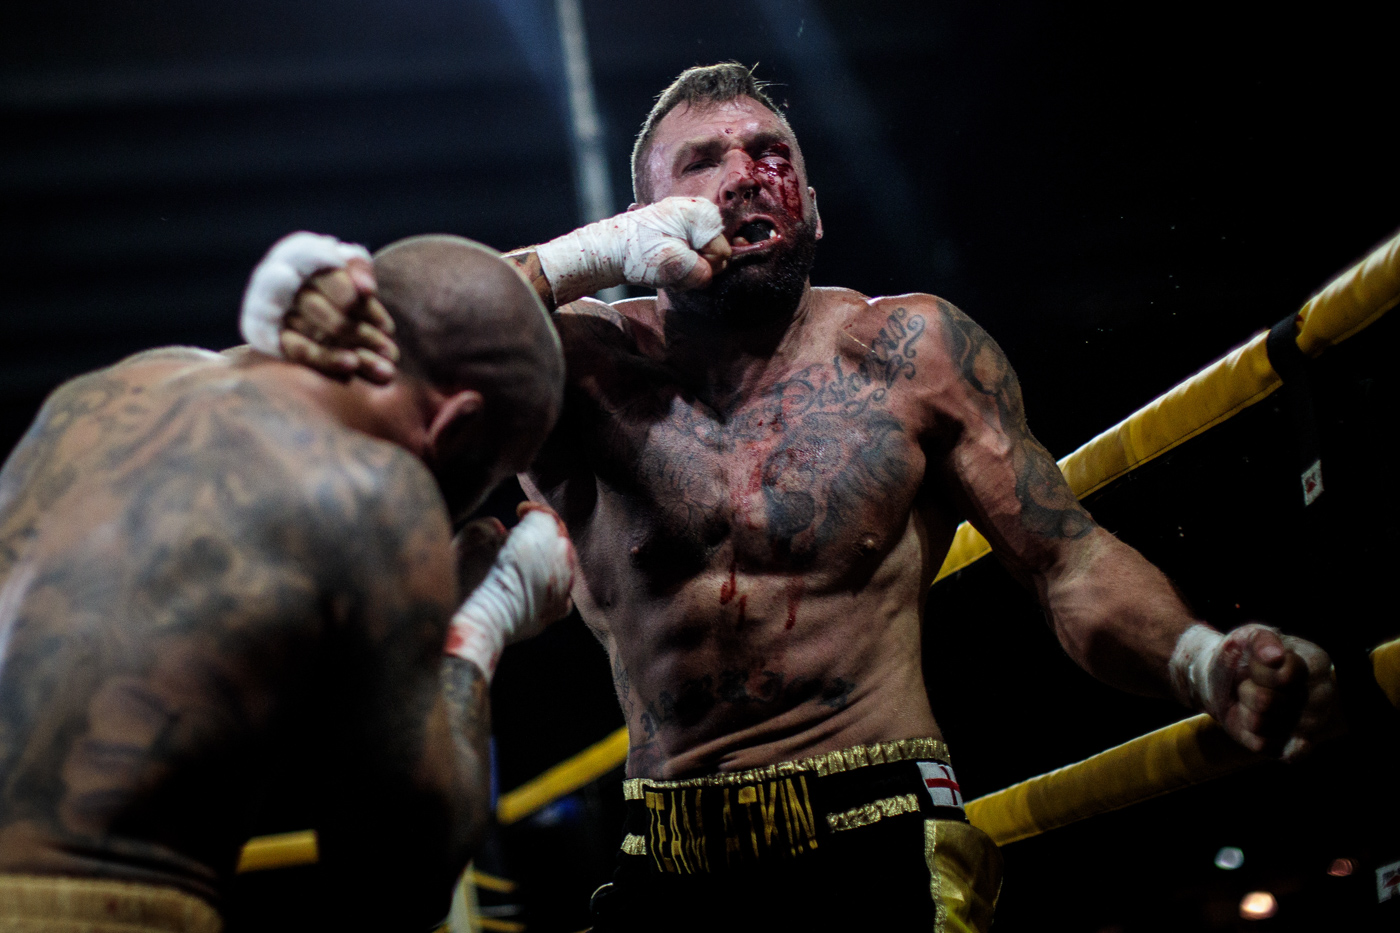 MANCHESTER, ENGLAND: Two-time World Bare-Knuckle Boxing Champion Luke Atkin, age 30 from York is hit by Dom Clark, 35 from Bournemouth during the Rogue Elite world title fight at an Ultimate Bare Knuckle Boxing (UBKB) event at Bowlers Exhibition Centre on August 4, 2018.